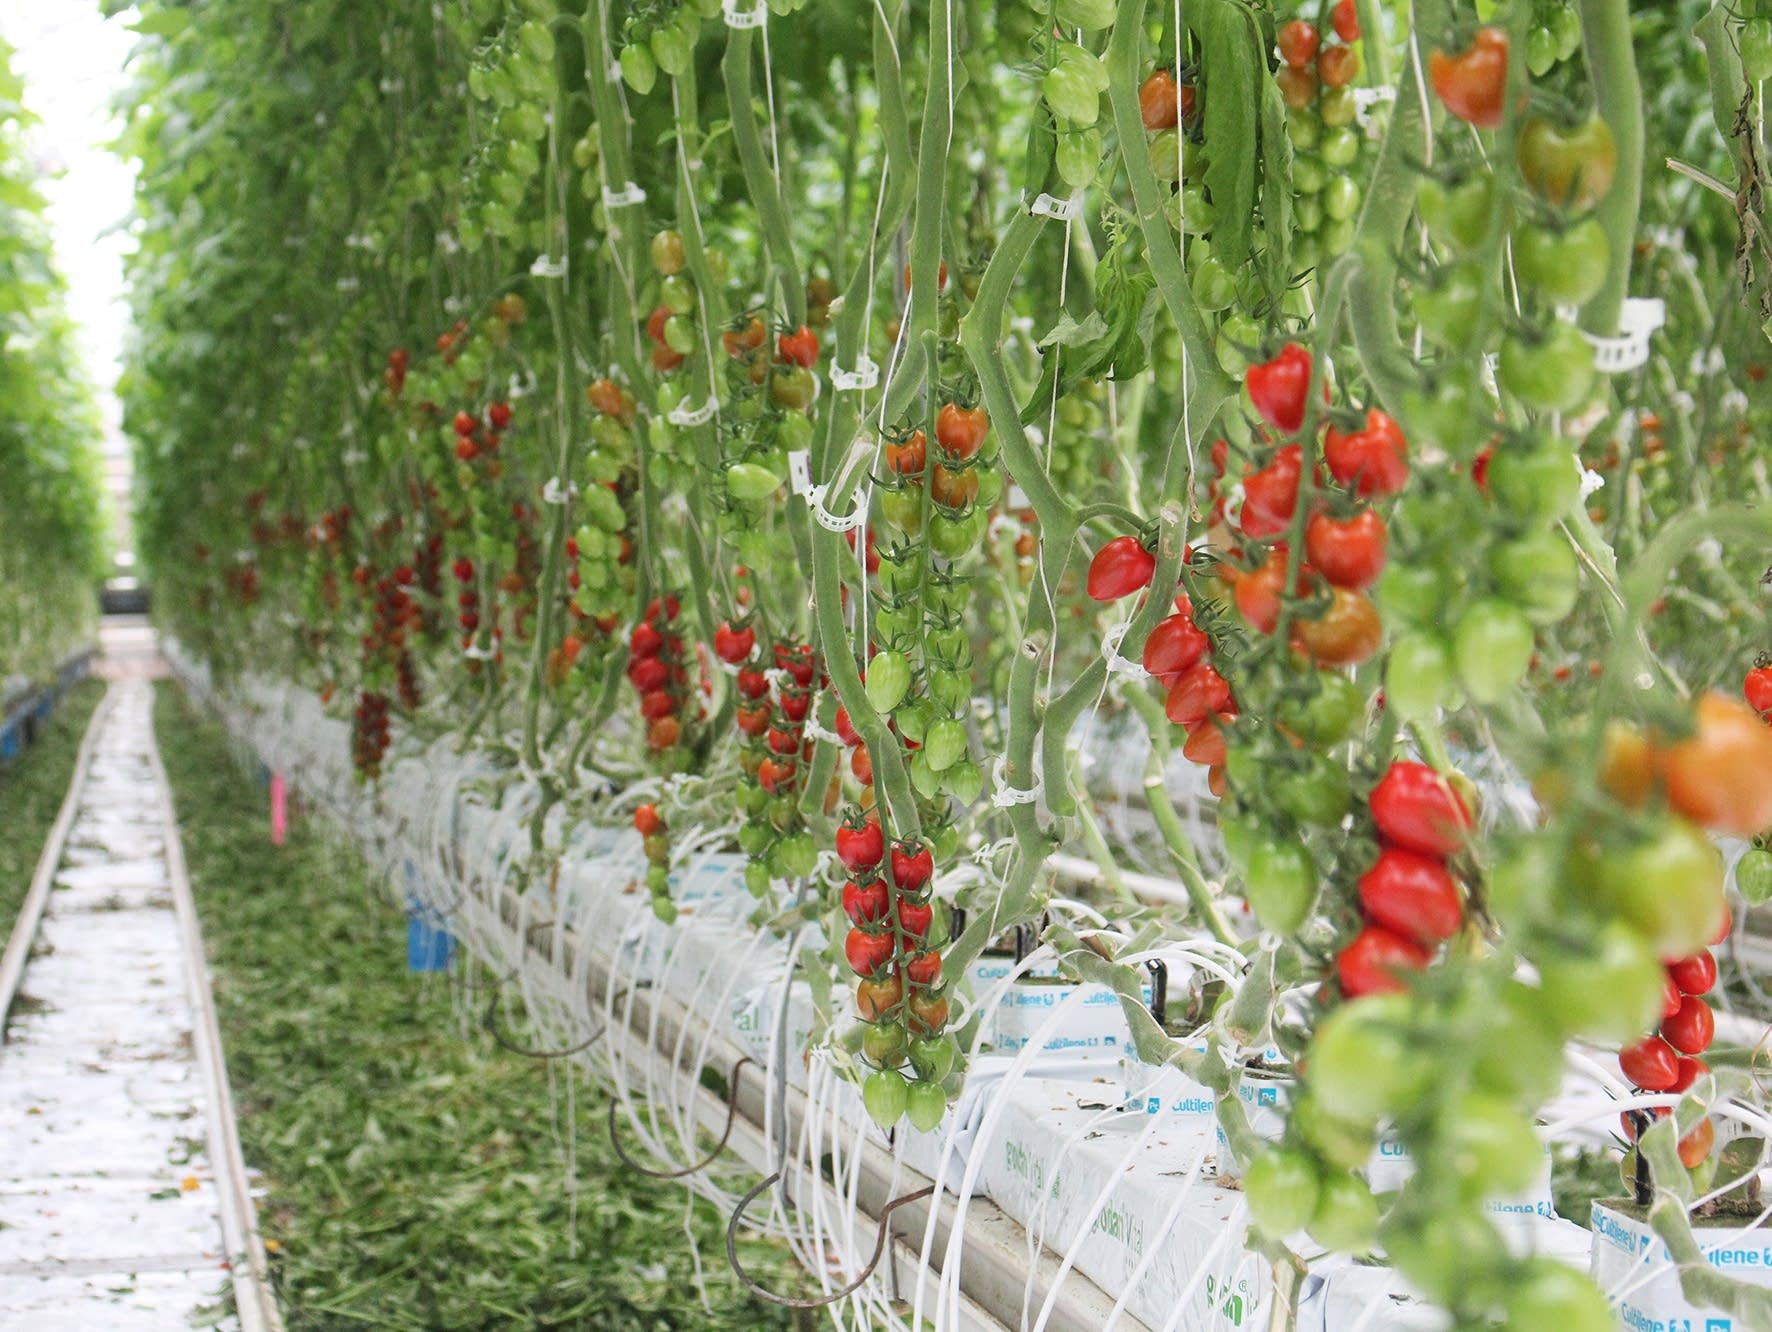 How Canada Became A Greenhouse Superpower Mpr News